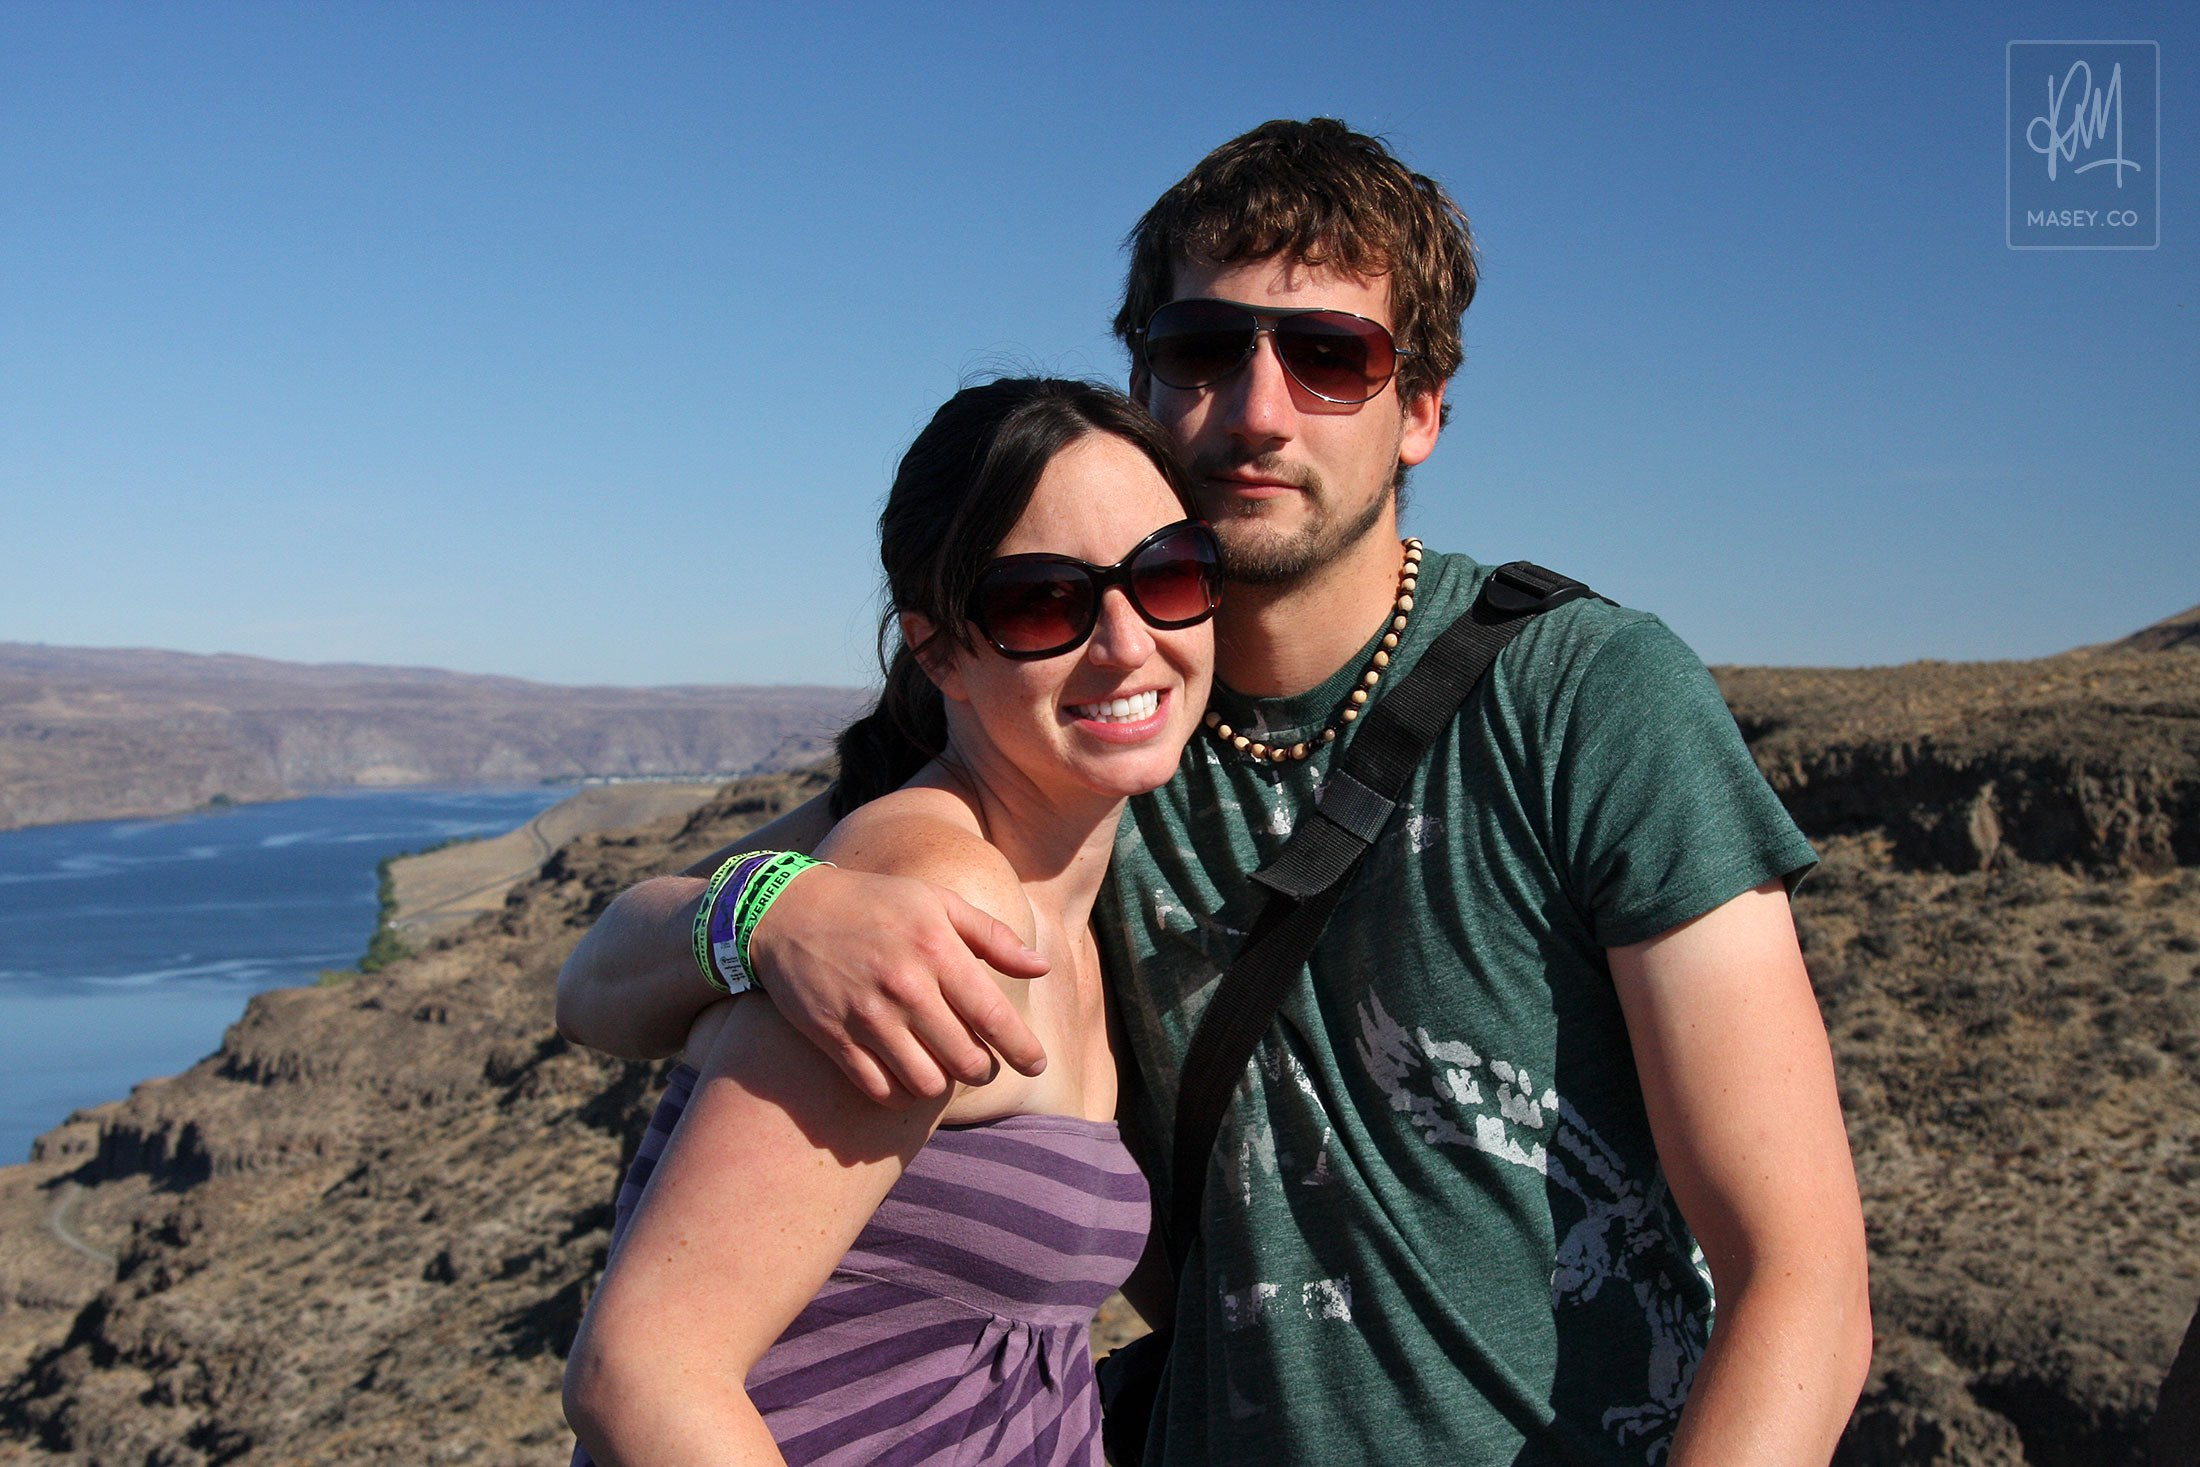 Heading home from another amazing DMB weekend at The Gorge!